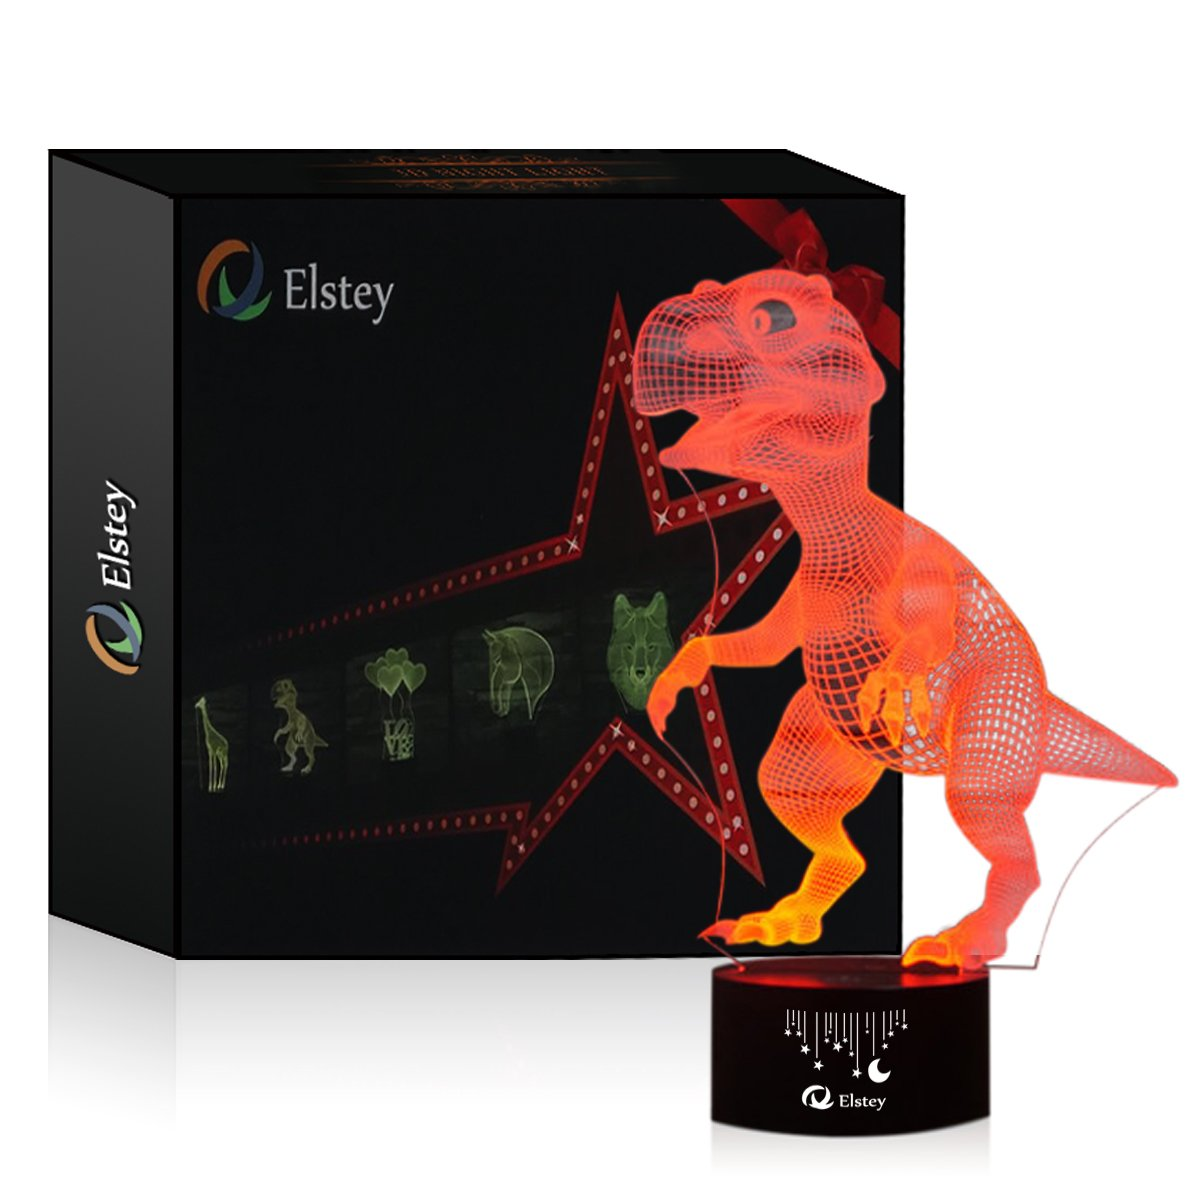 Dinosaur 3D Night Light Touch Table Desk Lamp, Elsley 7 Colors 3D Optical Illusion Lights with Acrylic Flat & ABS Base & USB Cabler for Christmas Gift by Elstey (Image #5)